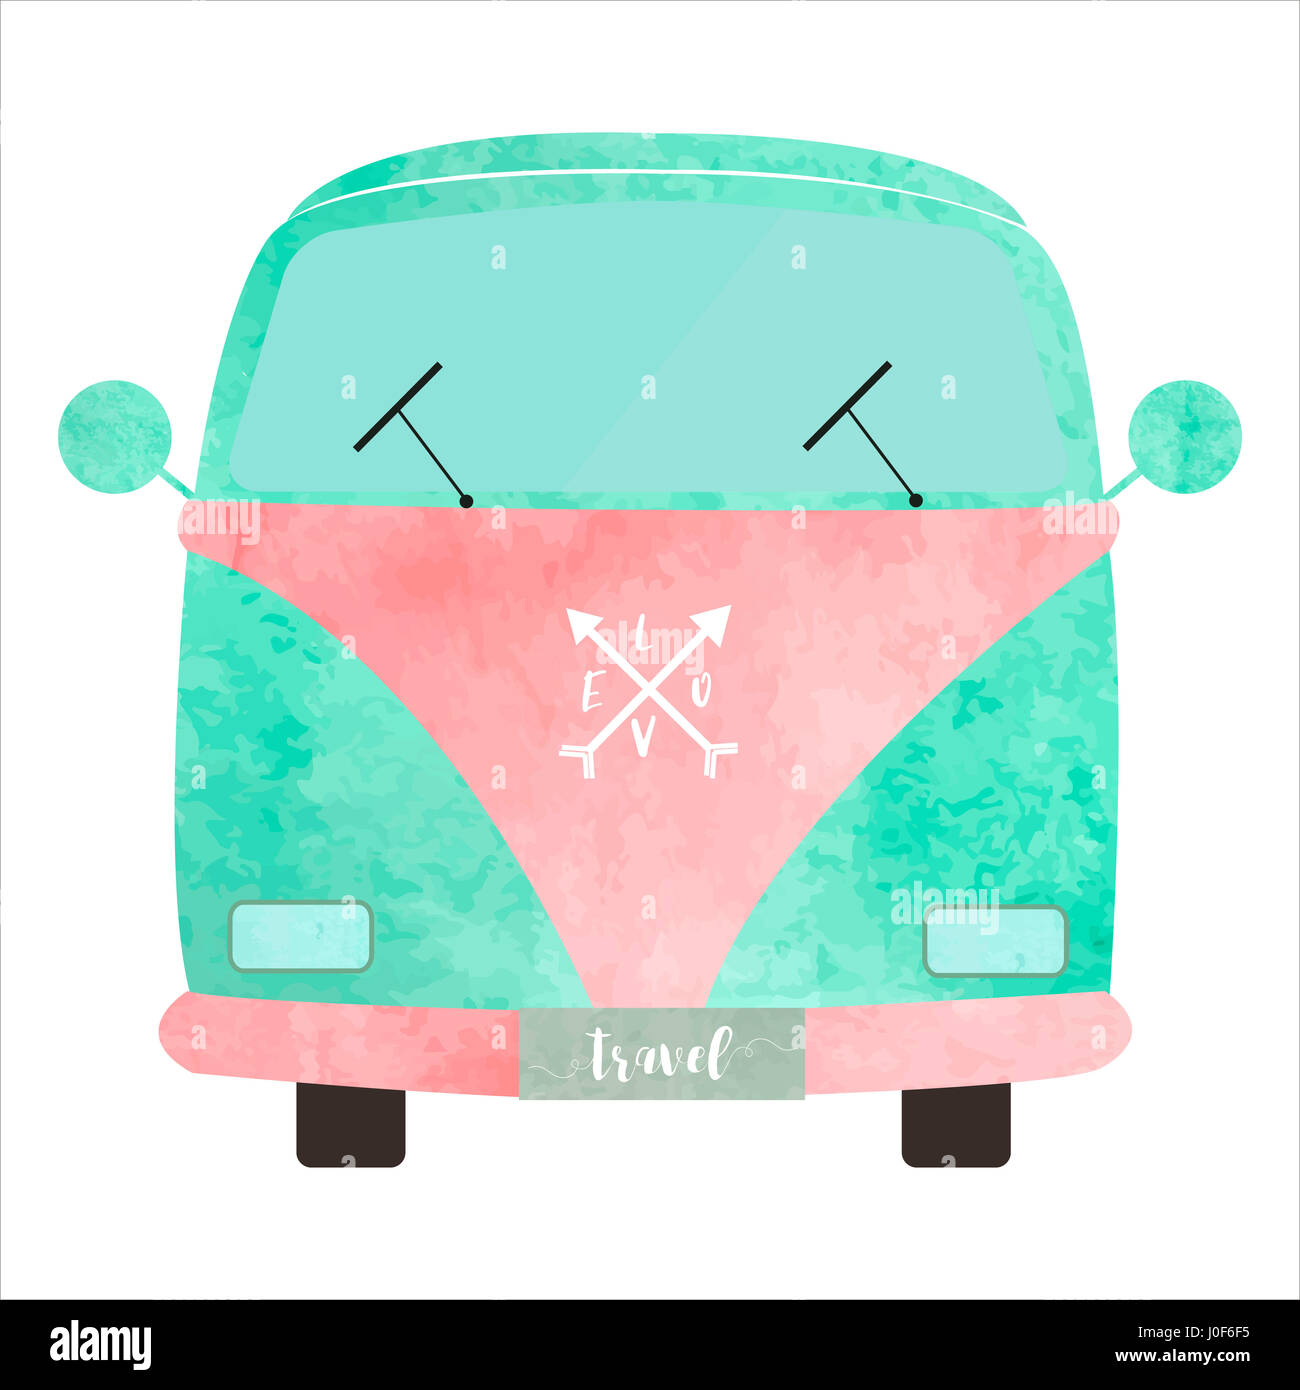 Love van with watercolor effect in blue and pink Stock Photo